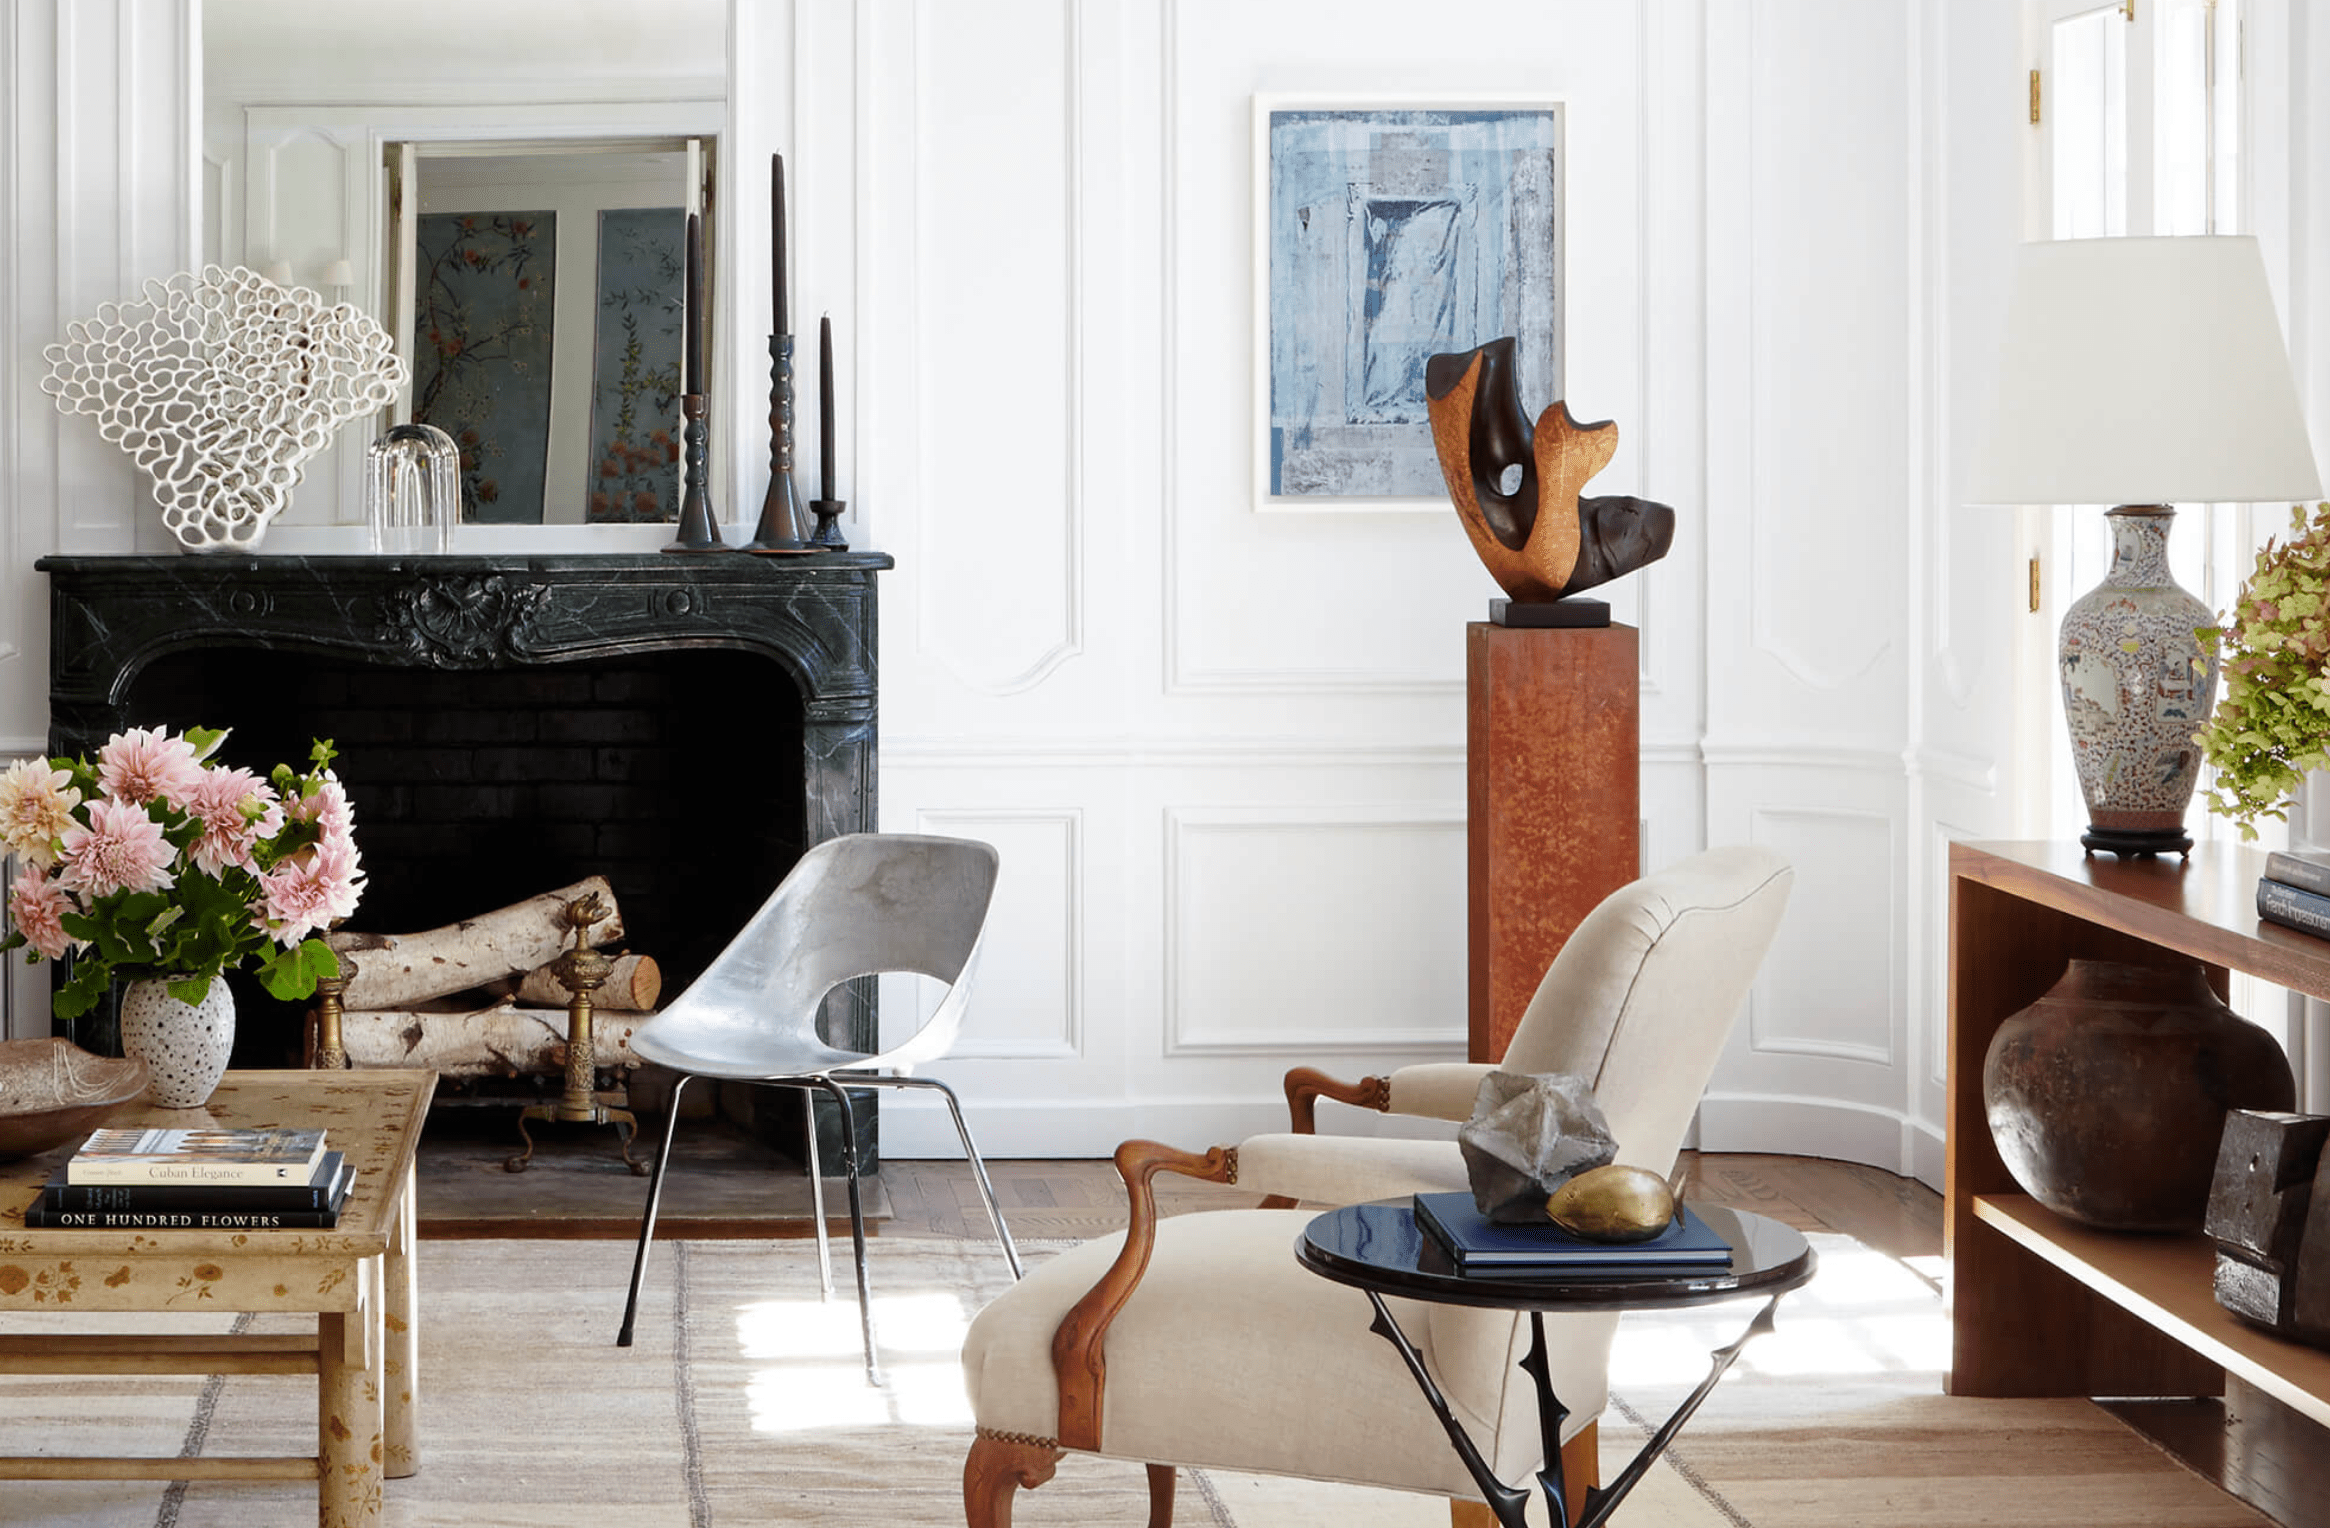 A living room filled with a mix of contemporary and antique furniture and decor